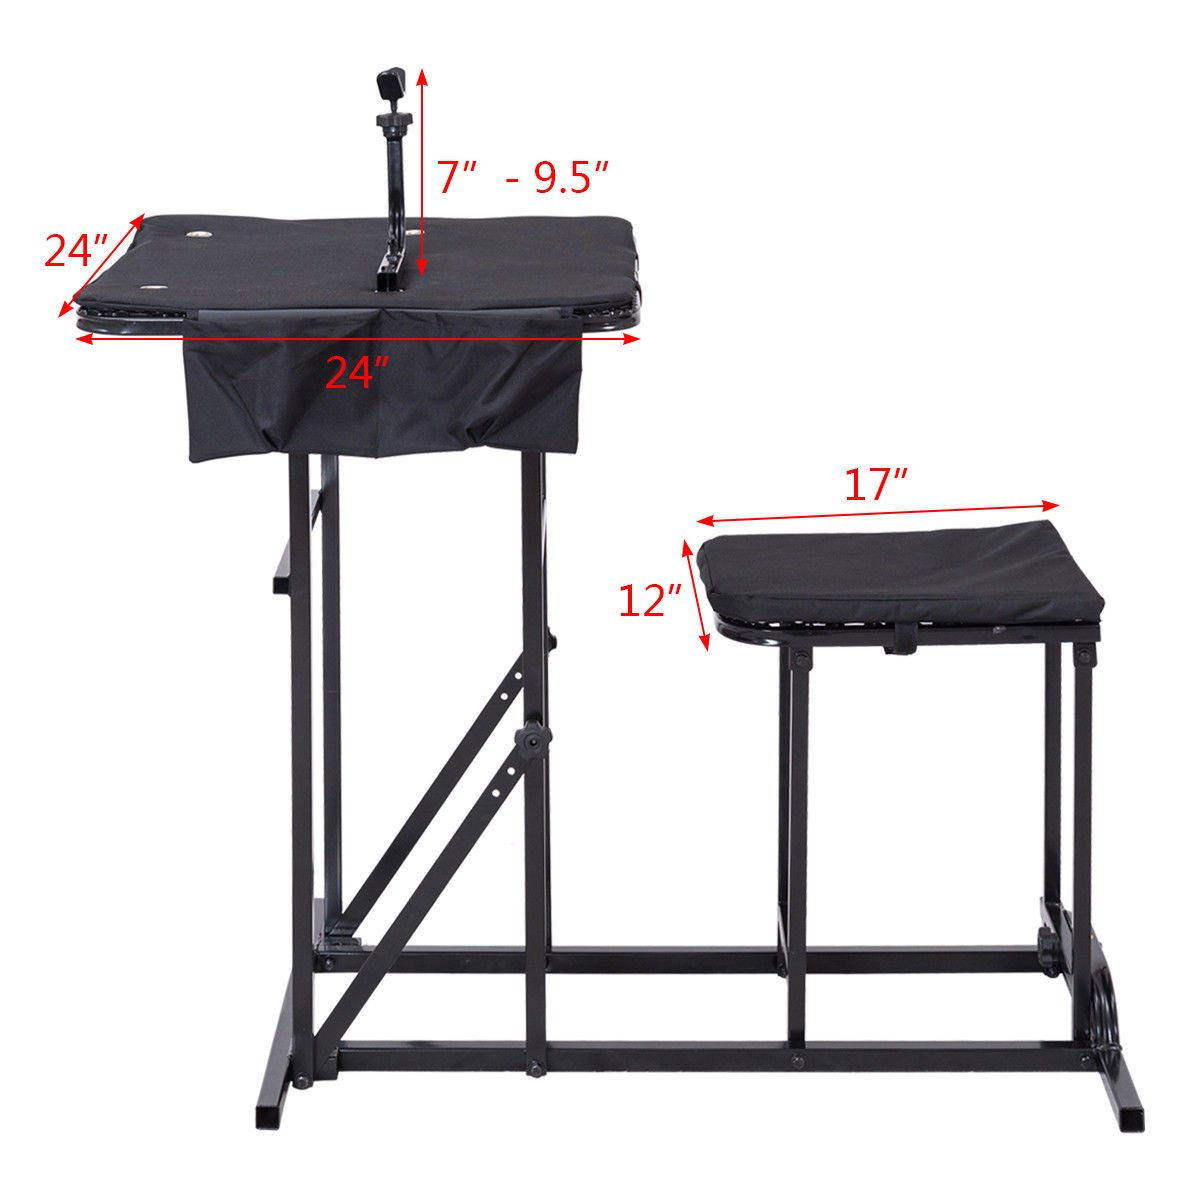 Folding Shooting Bench Seat with Adjustable Table Gun Rest Height Adjustable by BUY JOY (Image #8)